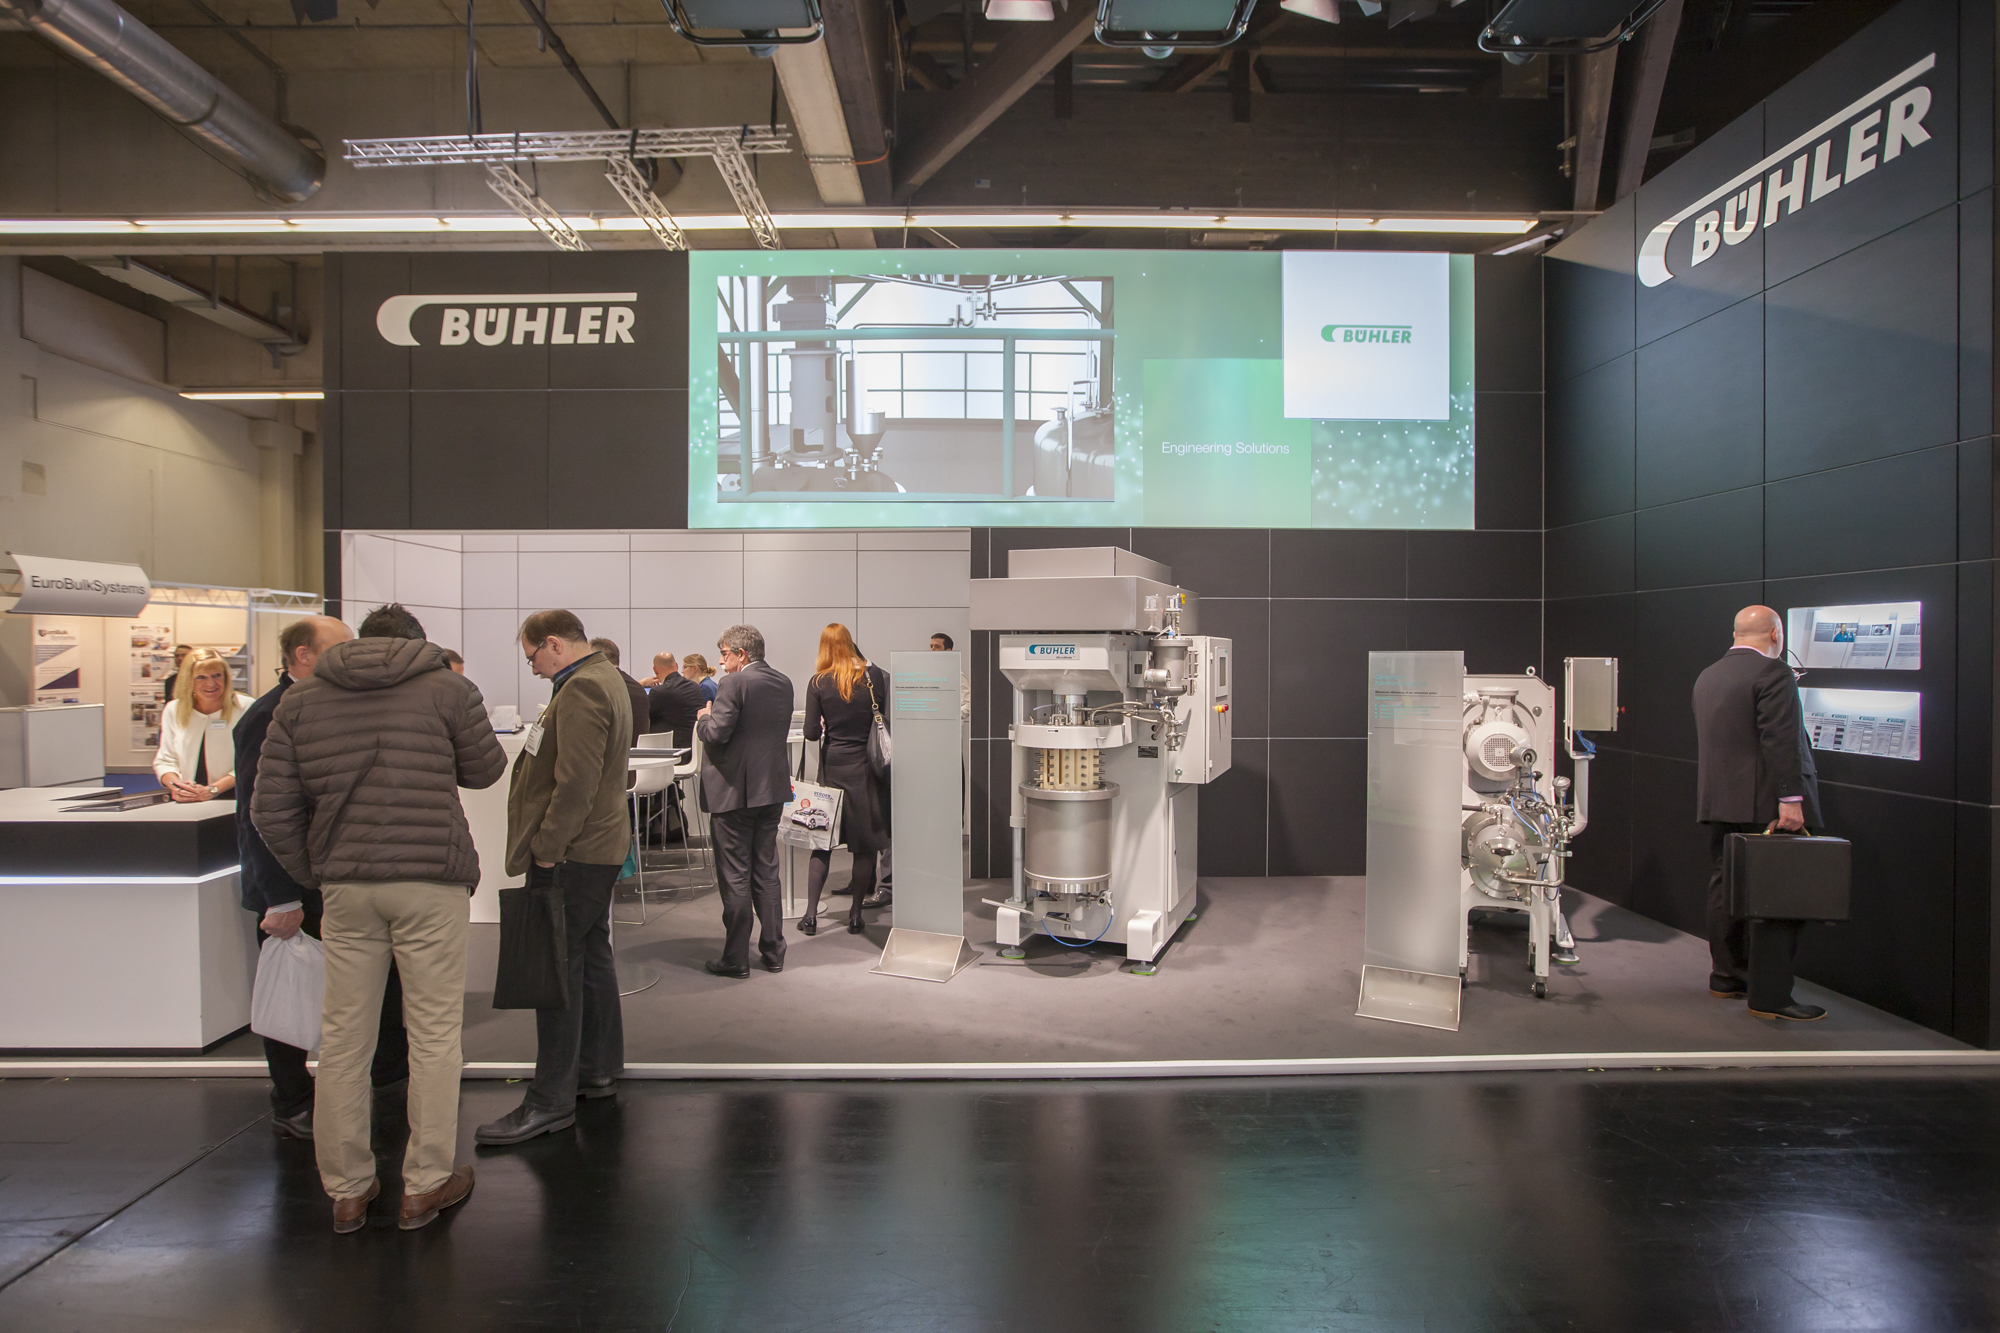 Bühler Group at POWTECH 2016 in Nürnberg, Germany (photo: Reinhard H. Wöhlbier)